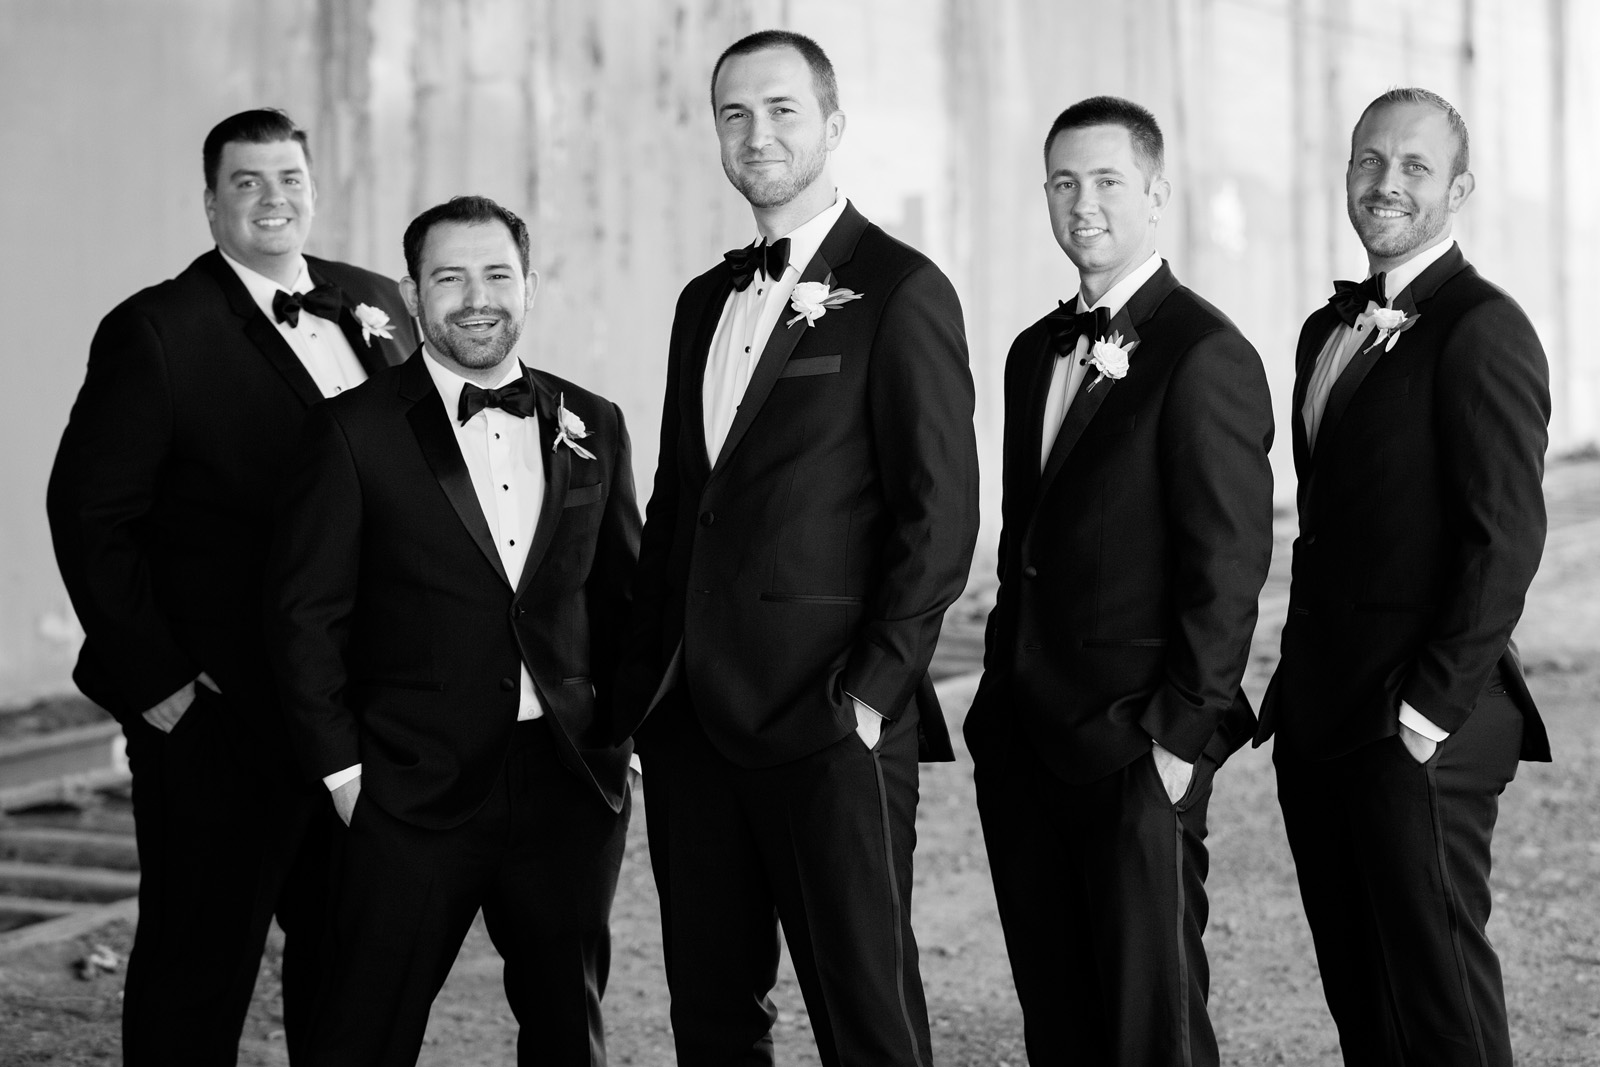 Portrait of Groom with Groomsmen in Black and White